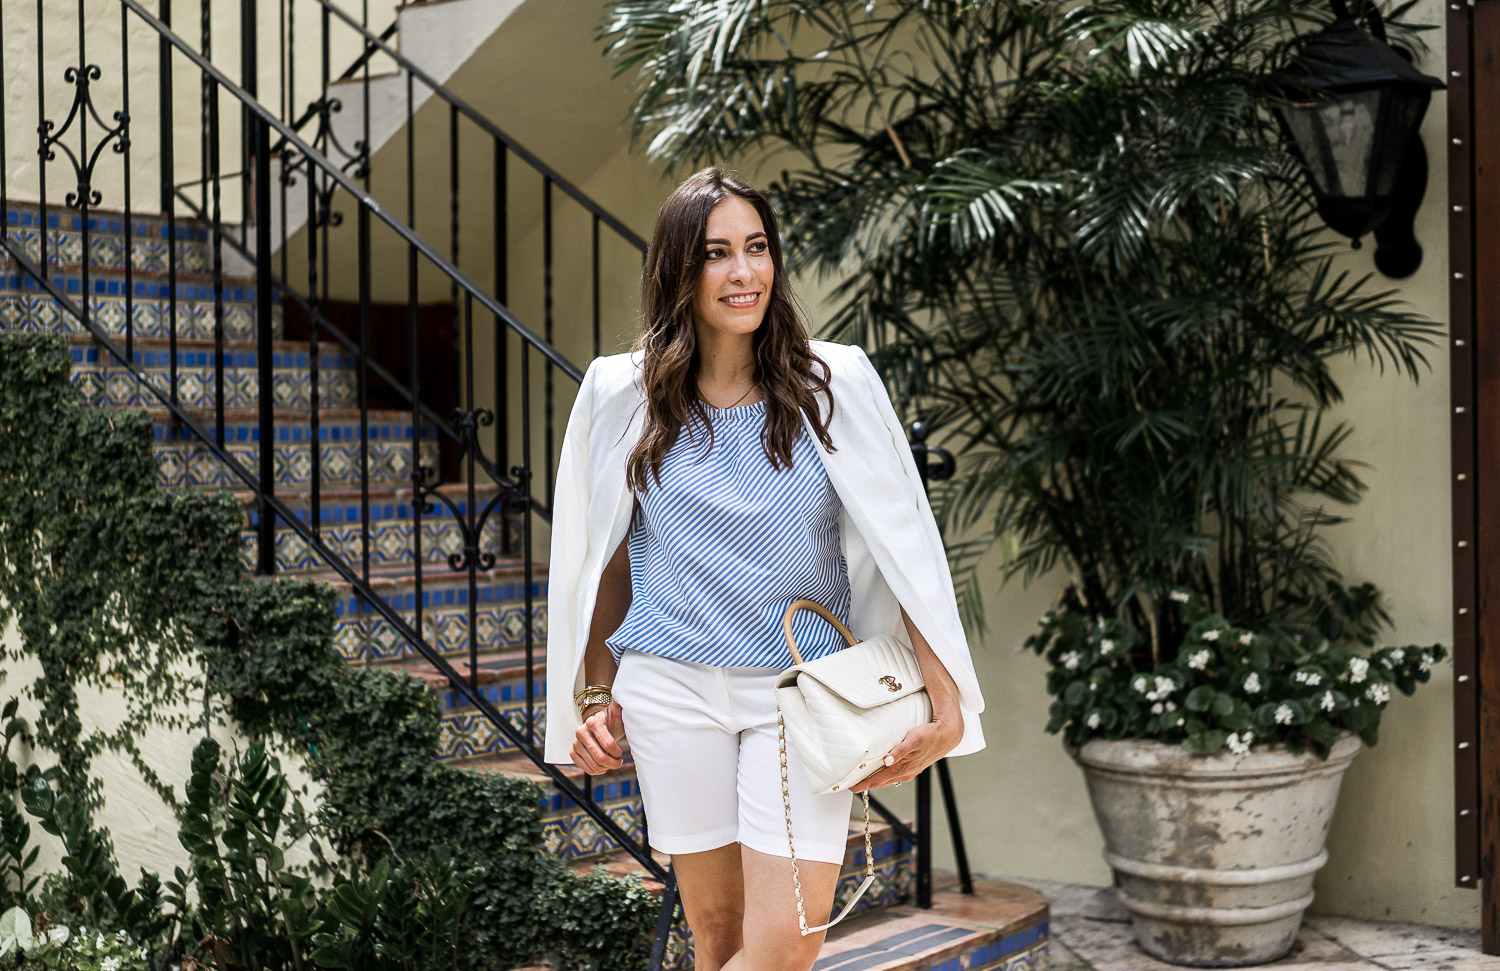 17dea08c309 ... Your Palm Beach style dreams are complete with Talbots white linen  blazer and a pair of ...